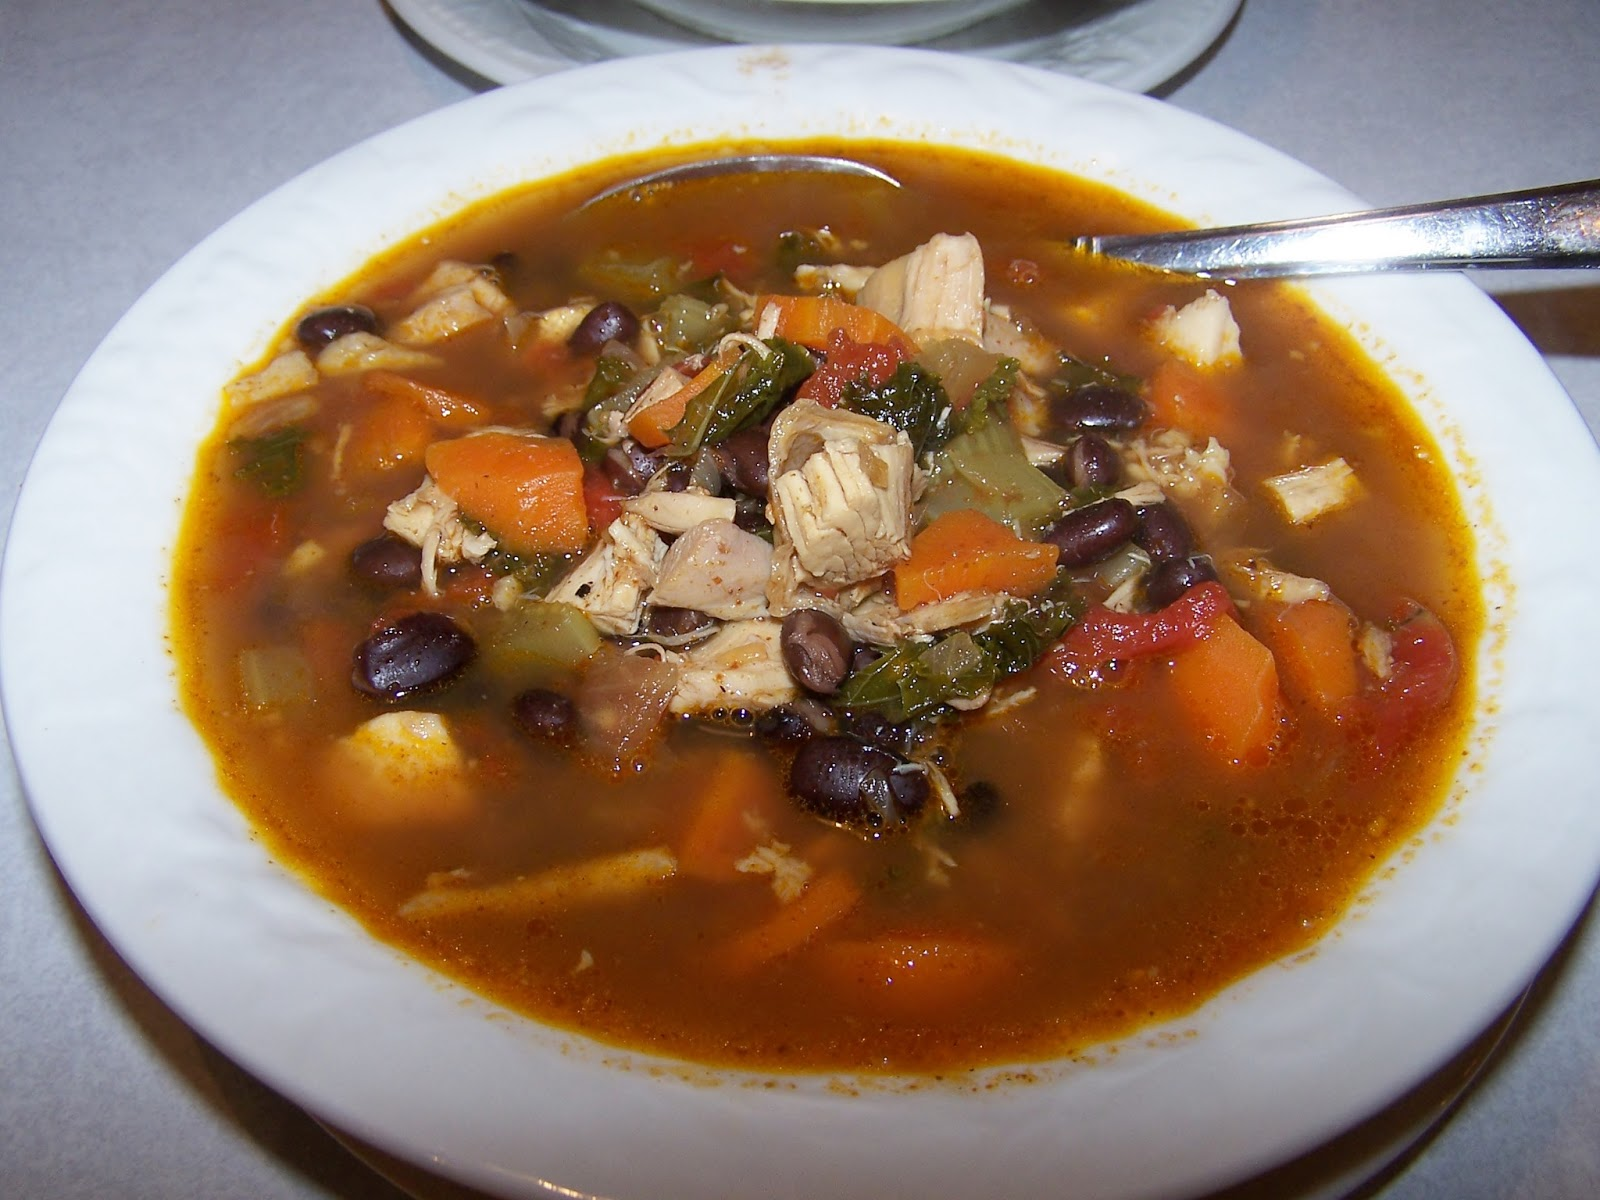 How to make Gluten Free Tortilla Soup in the Crockpot